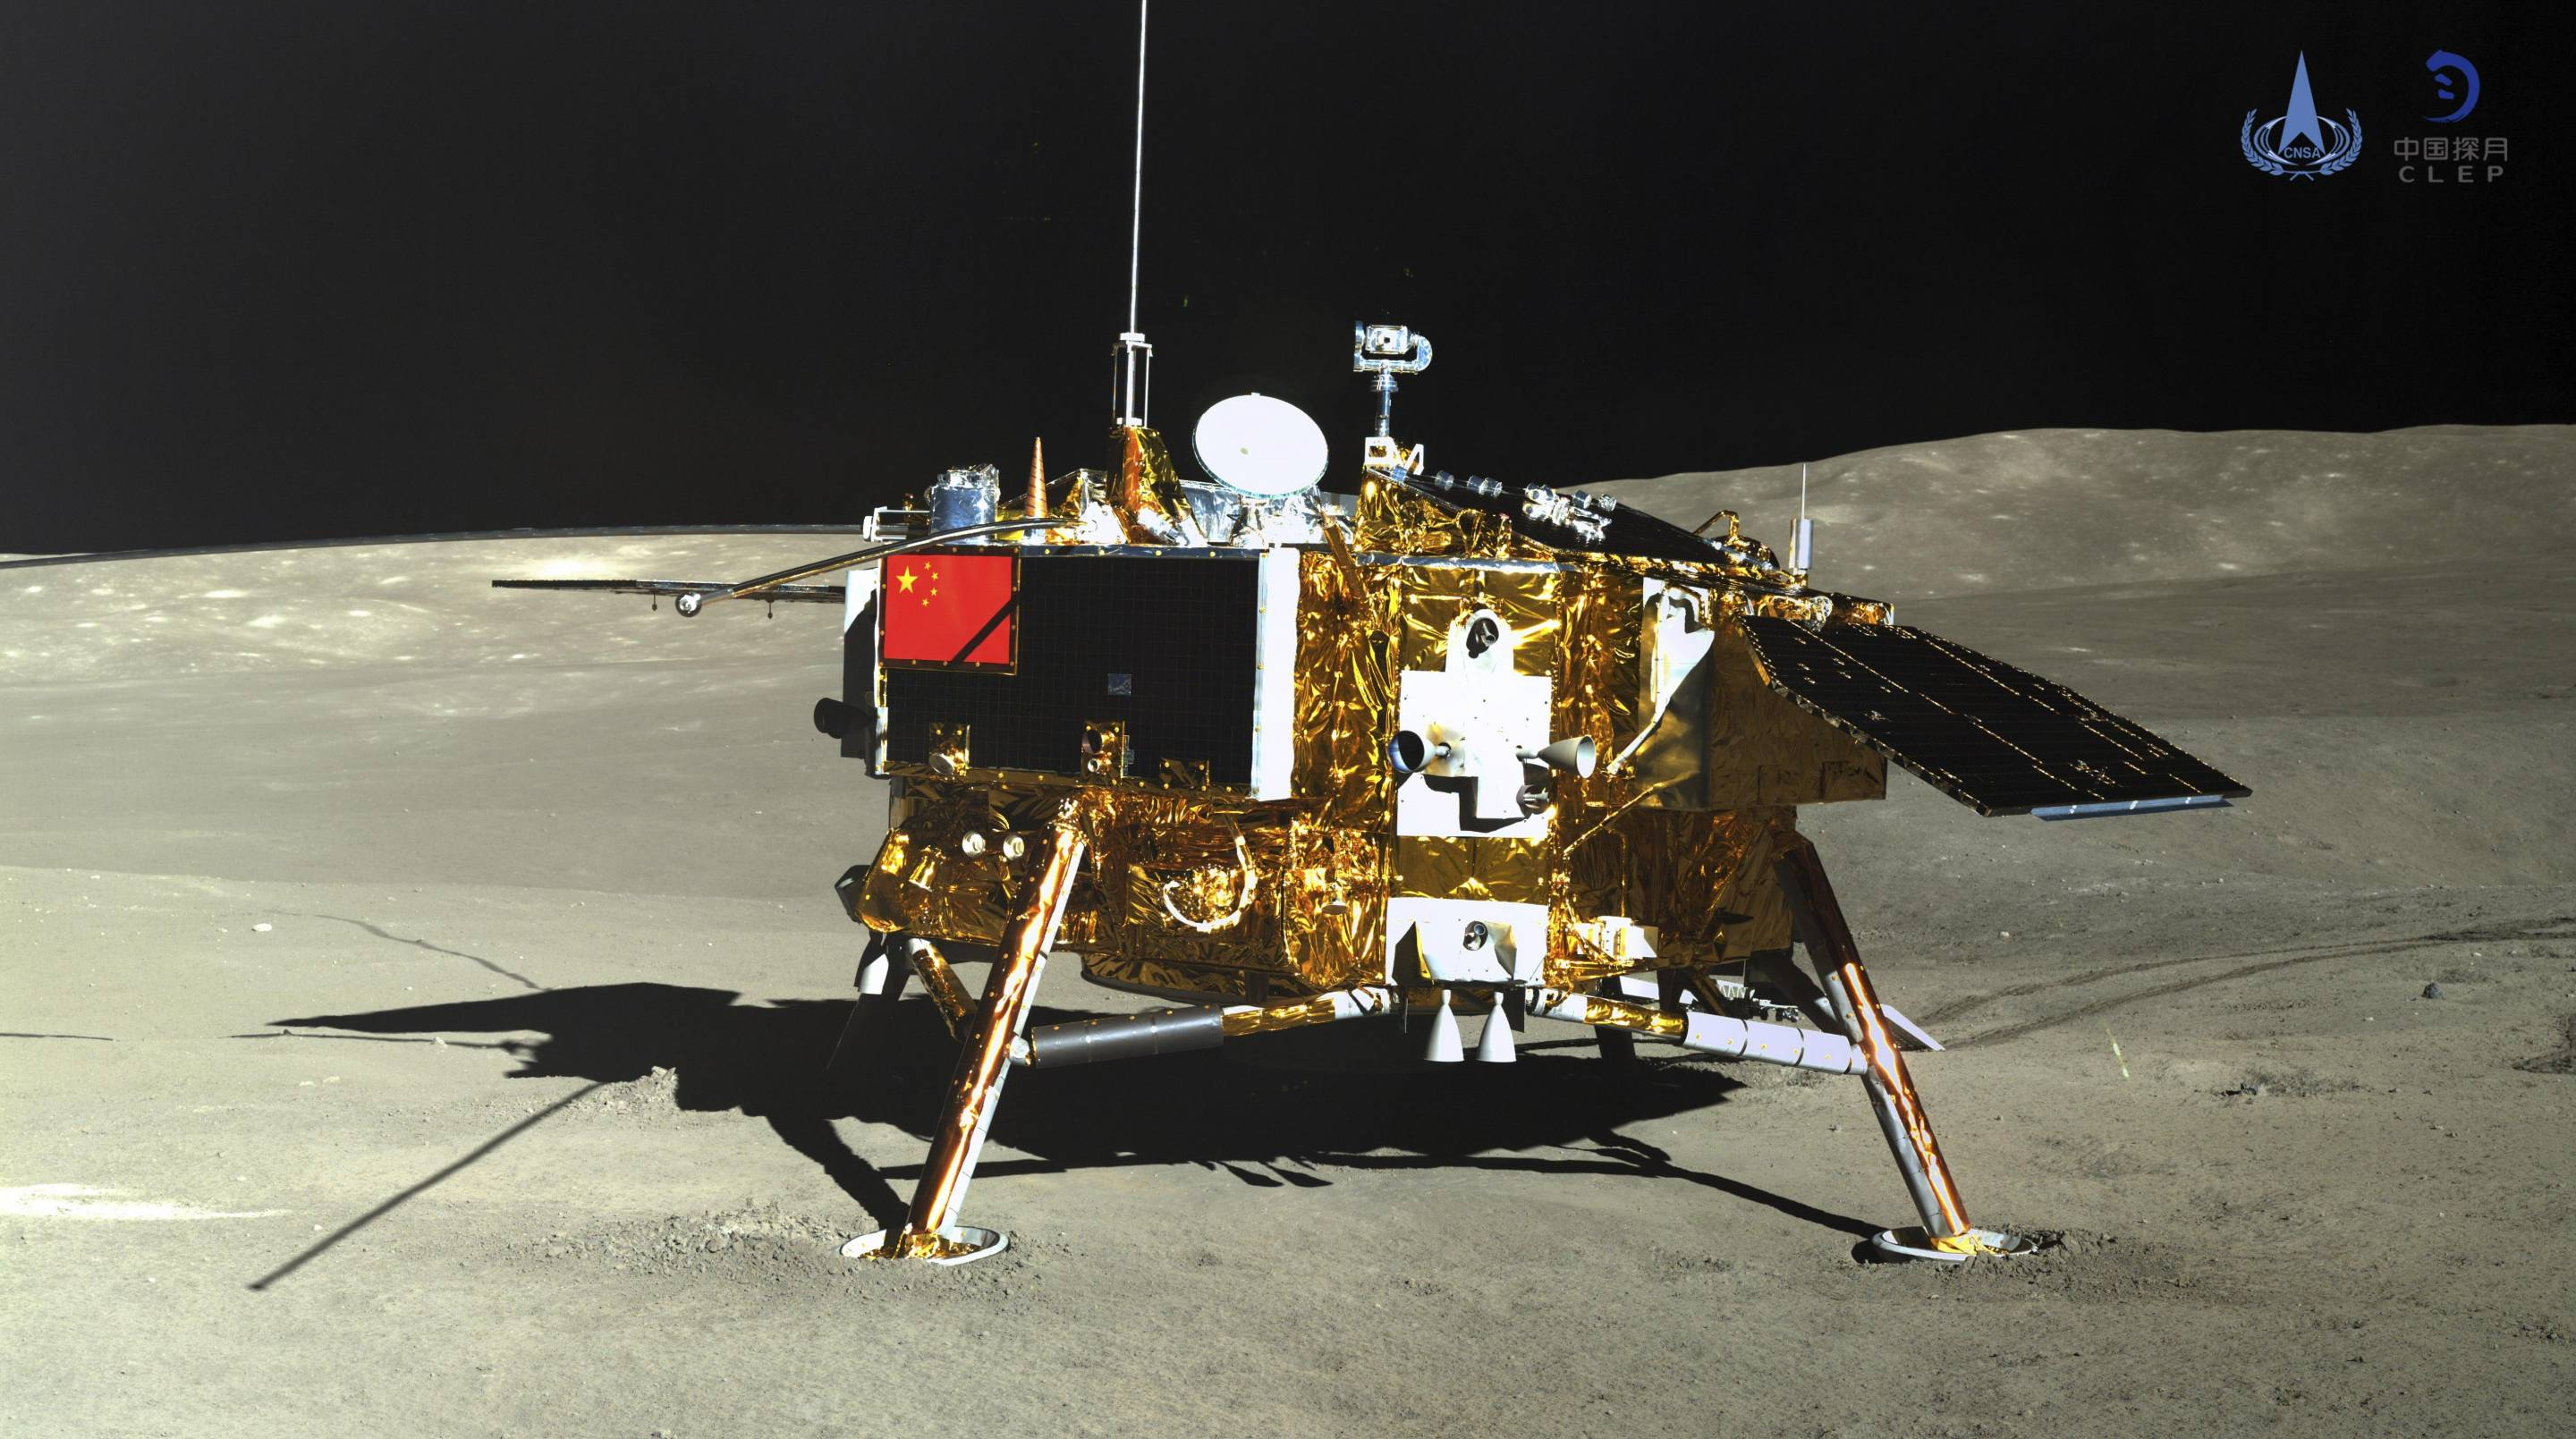 China and NASA Share Moon Landing Data